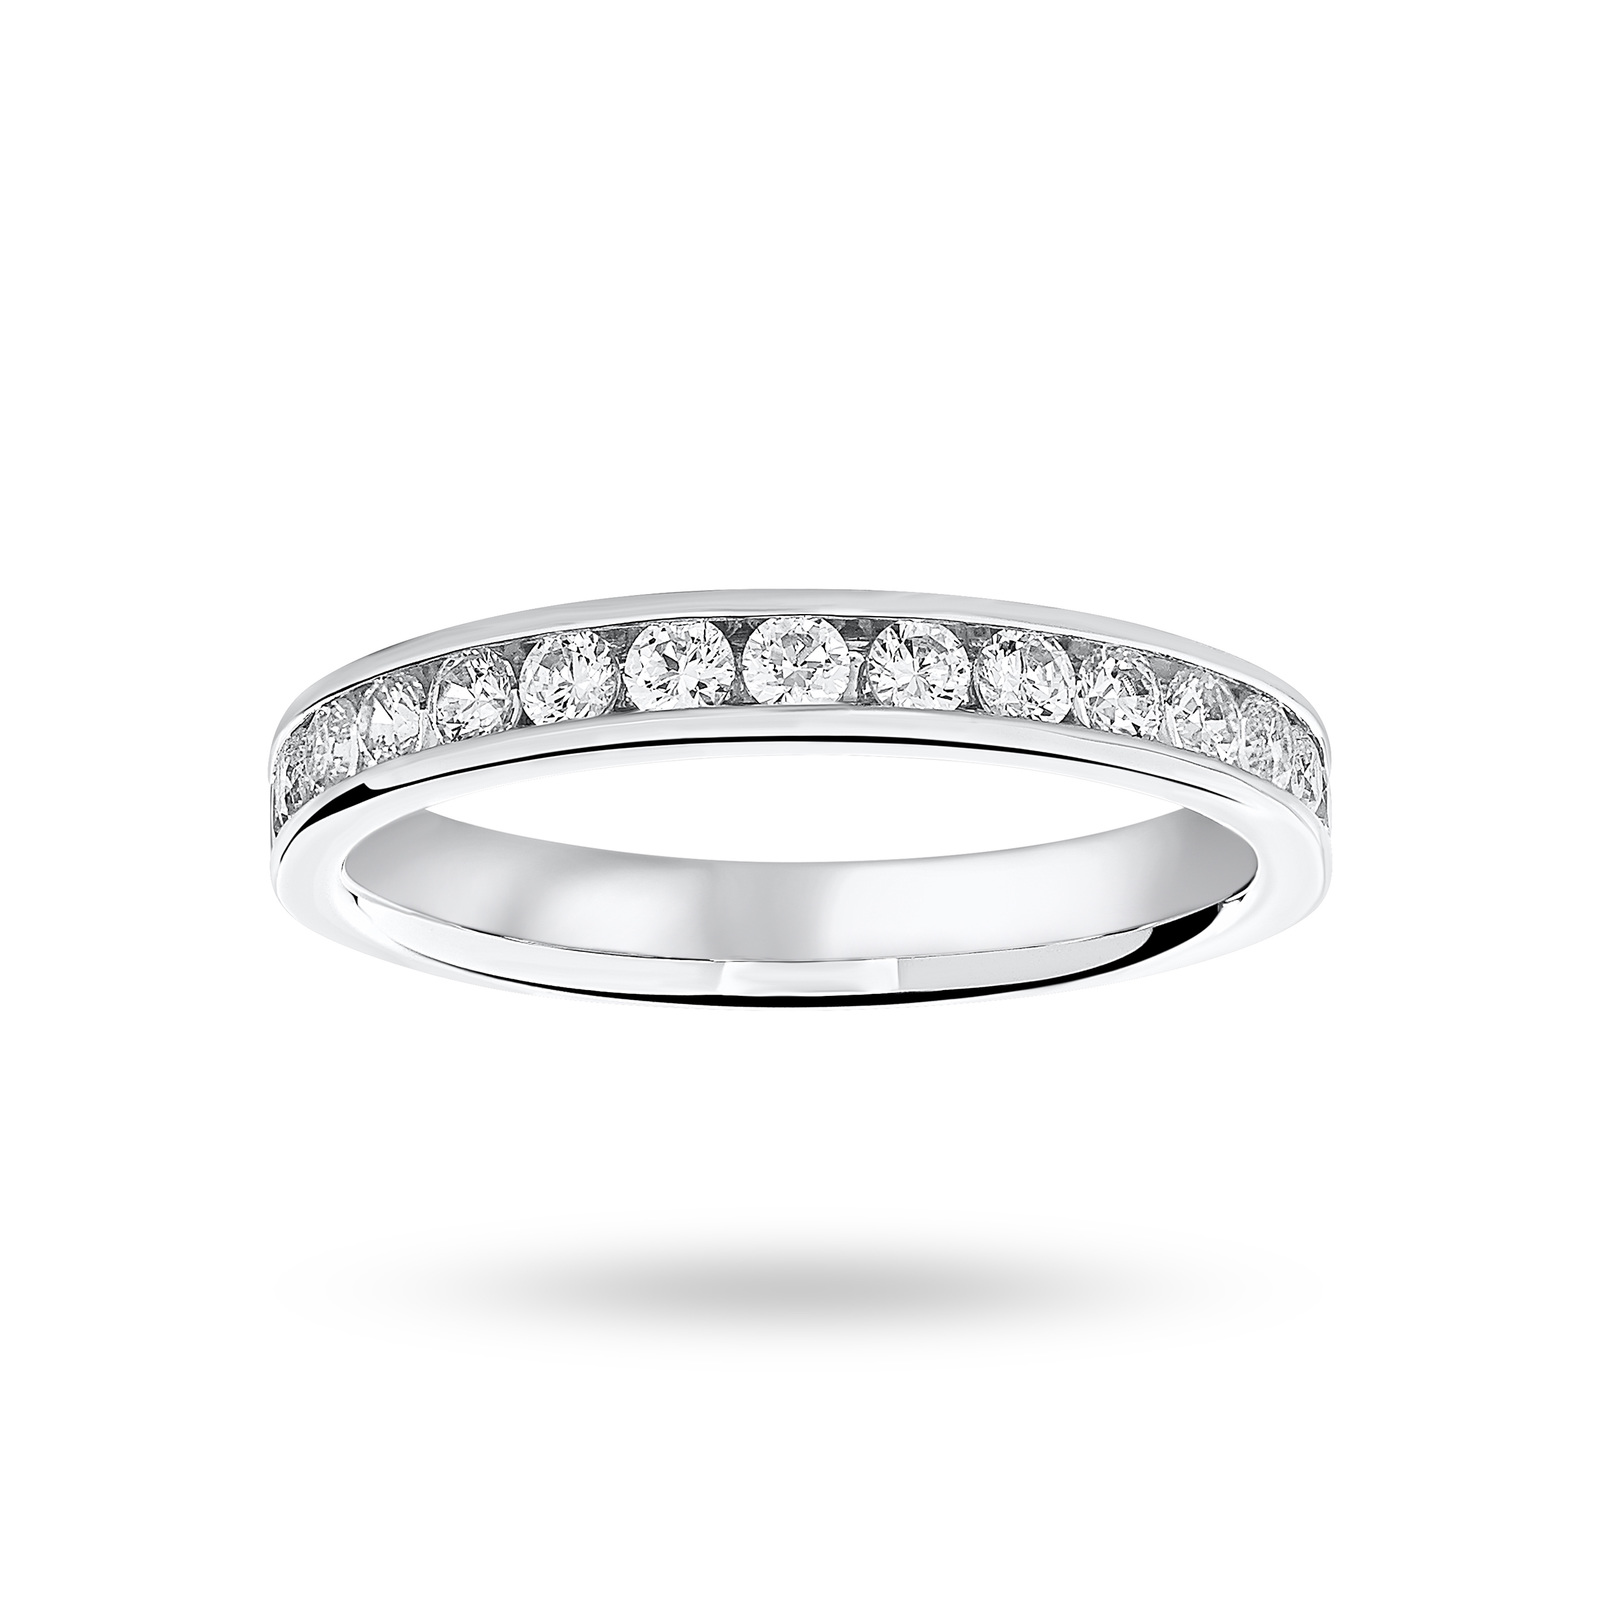 Platinum 0.50 Carat Brilliant Cut Half Eternity Ring